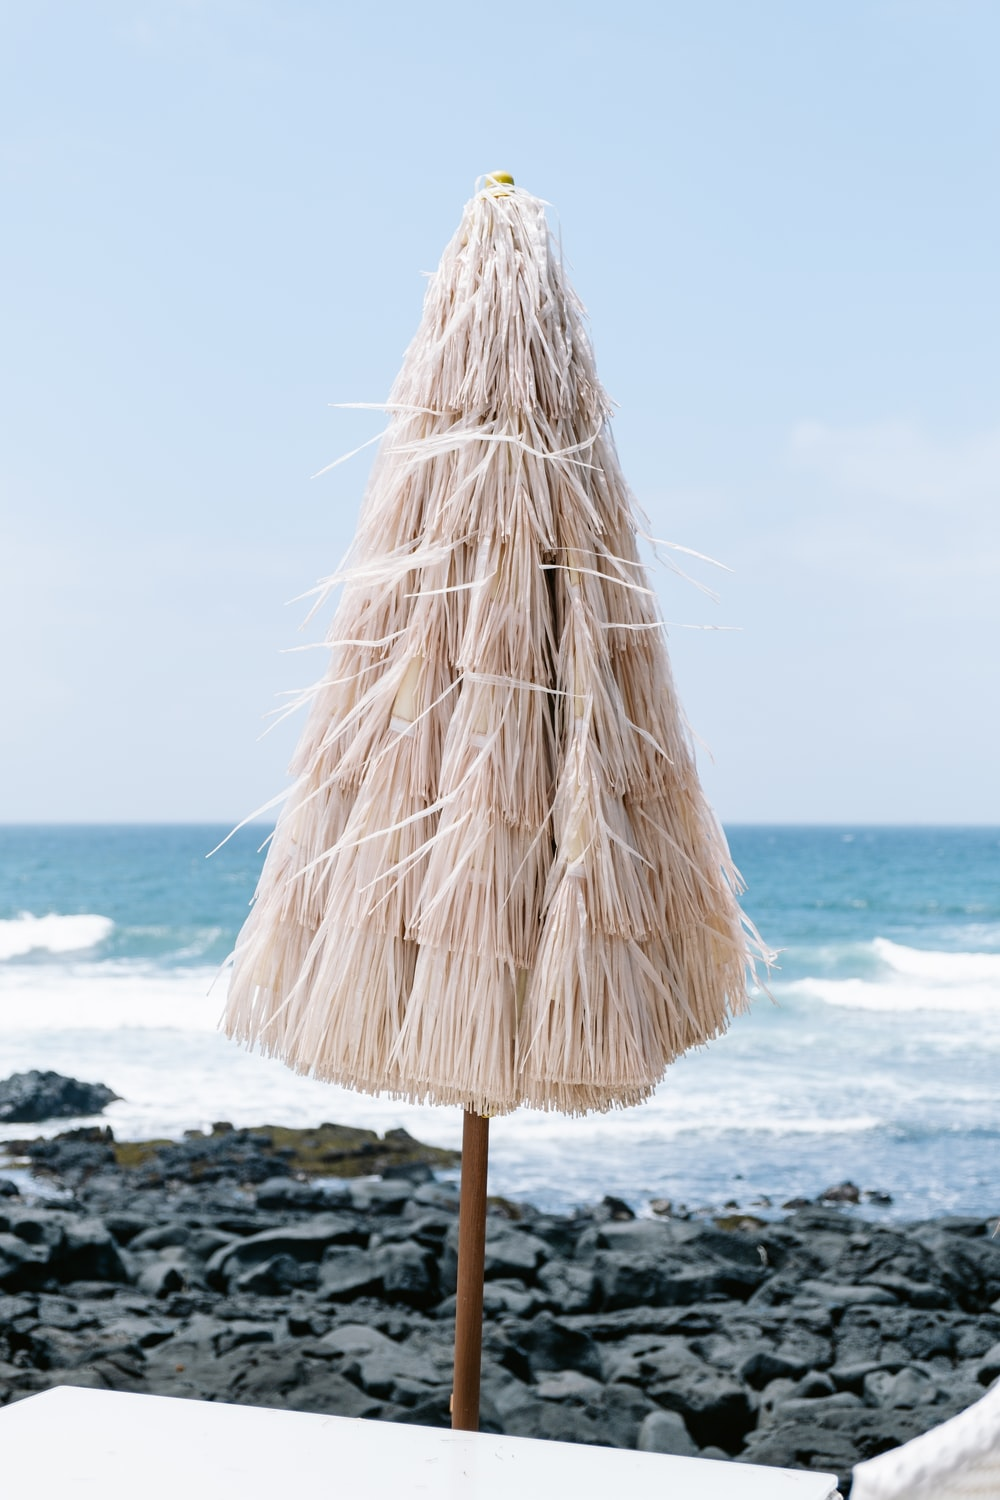 brown wooden stand on beach during daytime